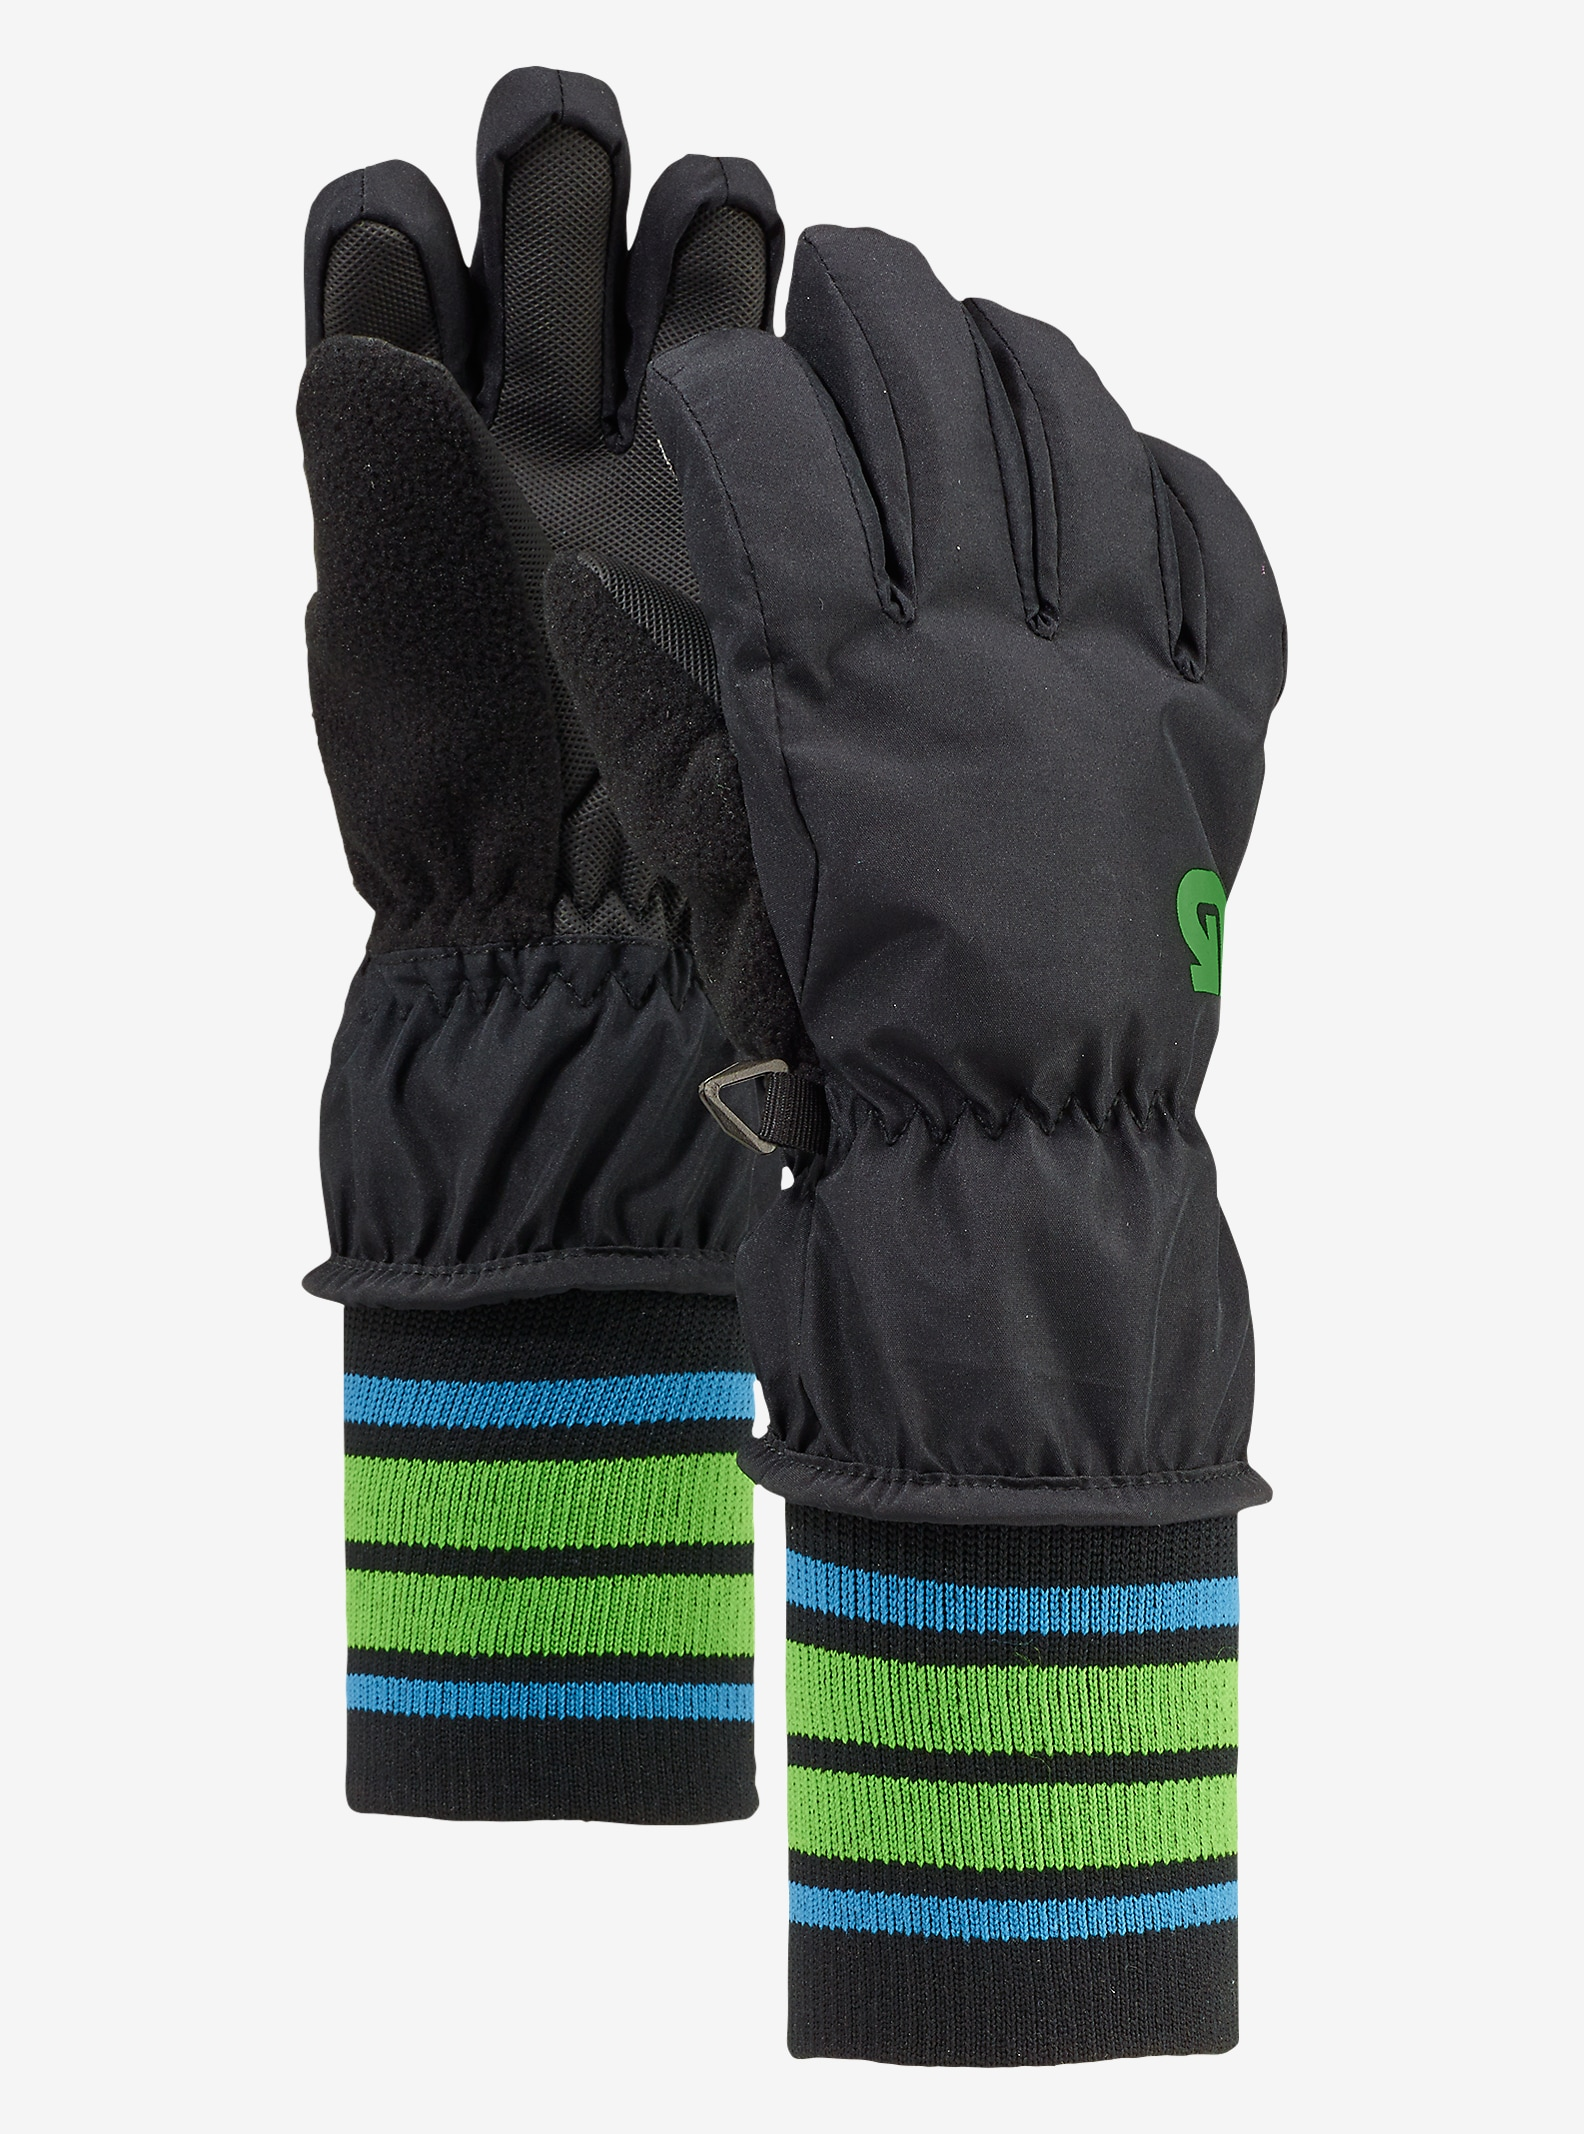 Burton Minishred Glove shown in True Black